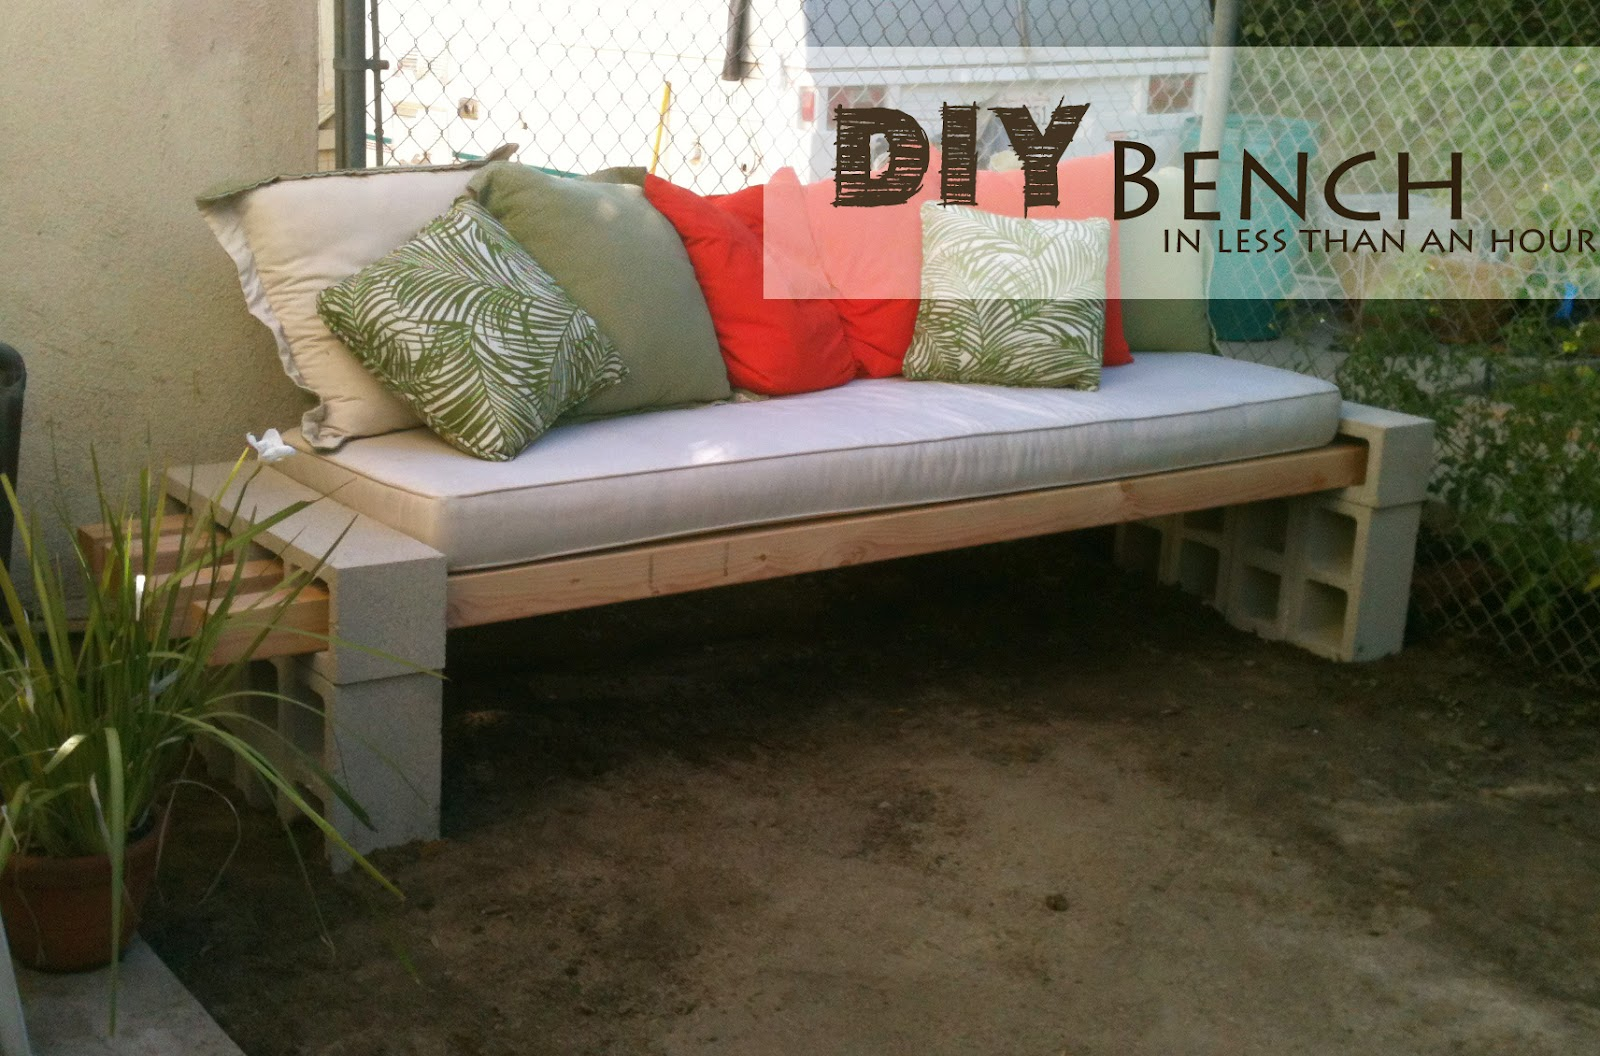 This is the fun bench we created!